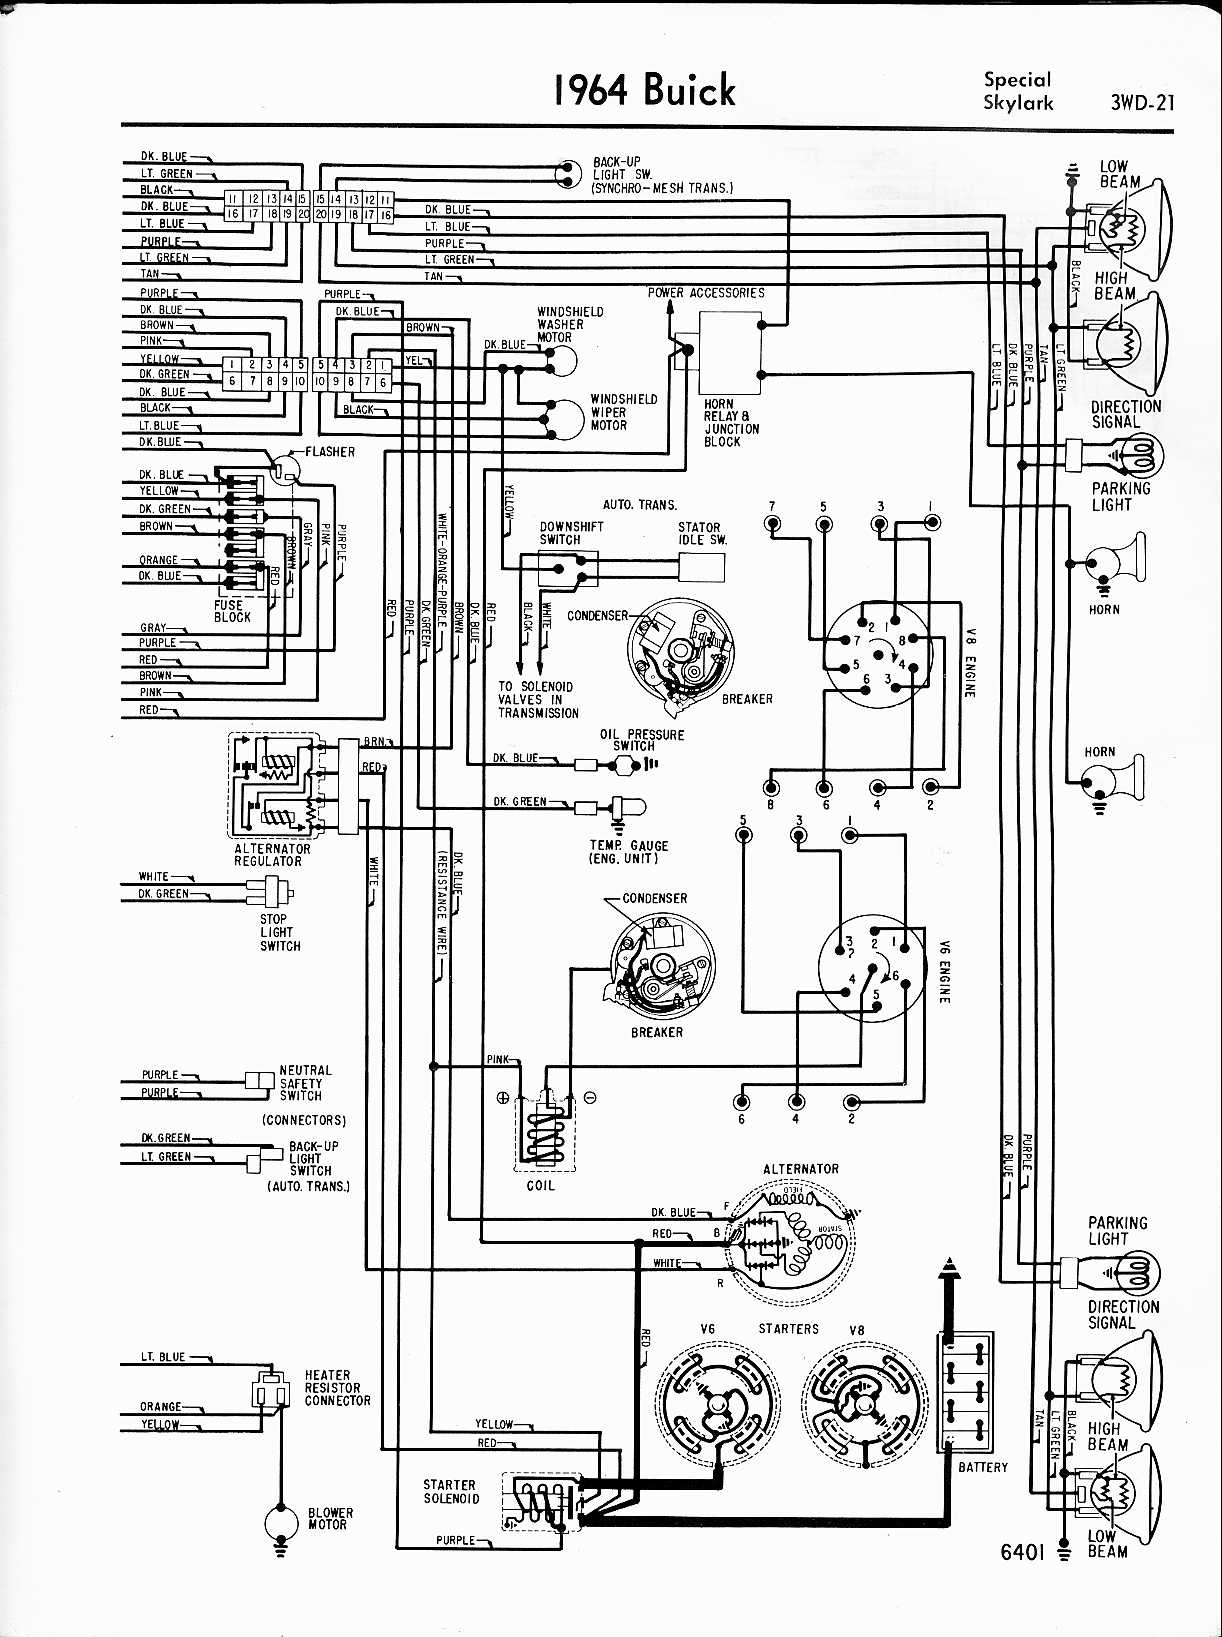 2000 Isuzu Rodeo Alternator Wiring Diagram in addition YHo6JV2NKgb DhBdVeRk4oAGP92aGqoFwxx anunhexzajZ3htsVAvKM 7CfSF7yknldsUdGeb6K5f28gDM1wRCg in addition Isuzu Pickup Radio Wiring Diagram Html likewise 2004 Nissan Titan 5 6l Serpentine Belt Diagram furthermore Head Gasket Repair For 2001 Pontiac. on 1998 isuzu hombre engine diagram